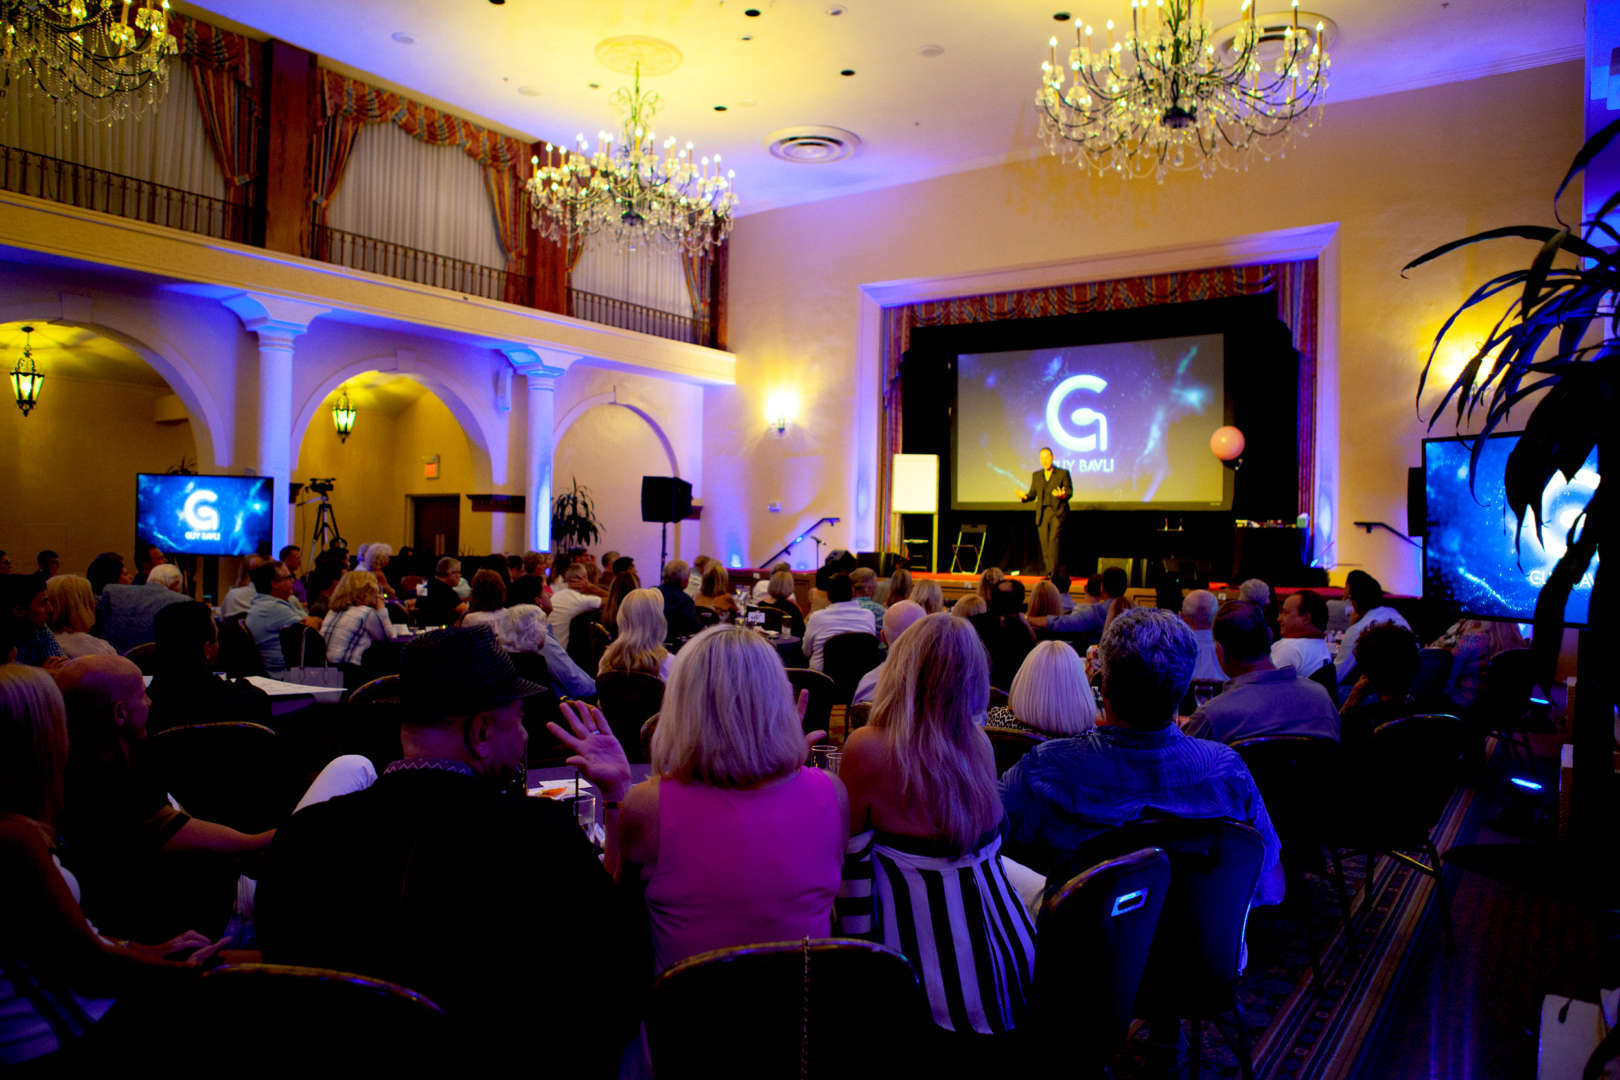 How To Find a Corporate Entertainer For Your Next Event